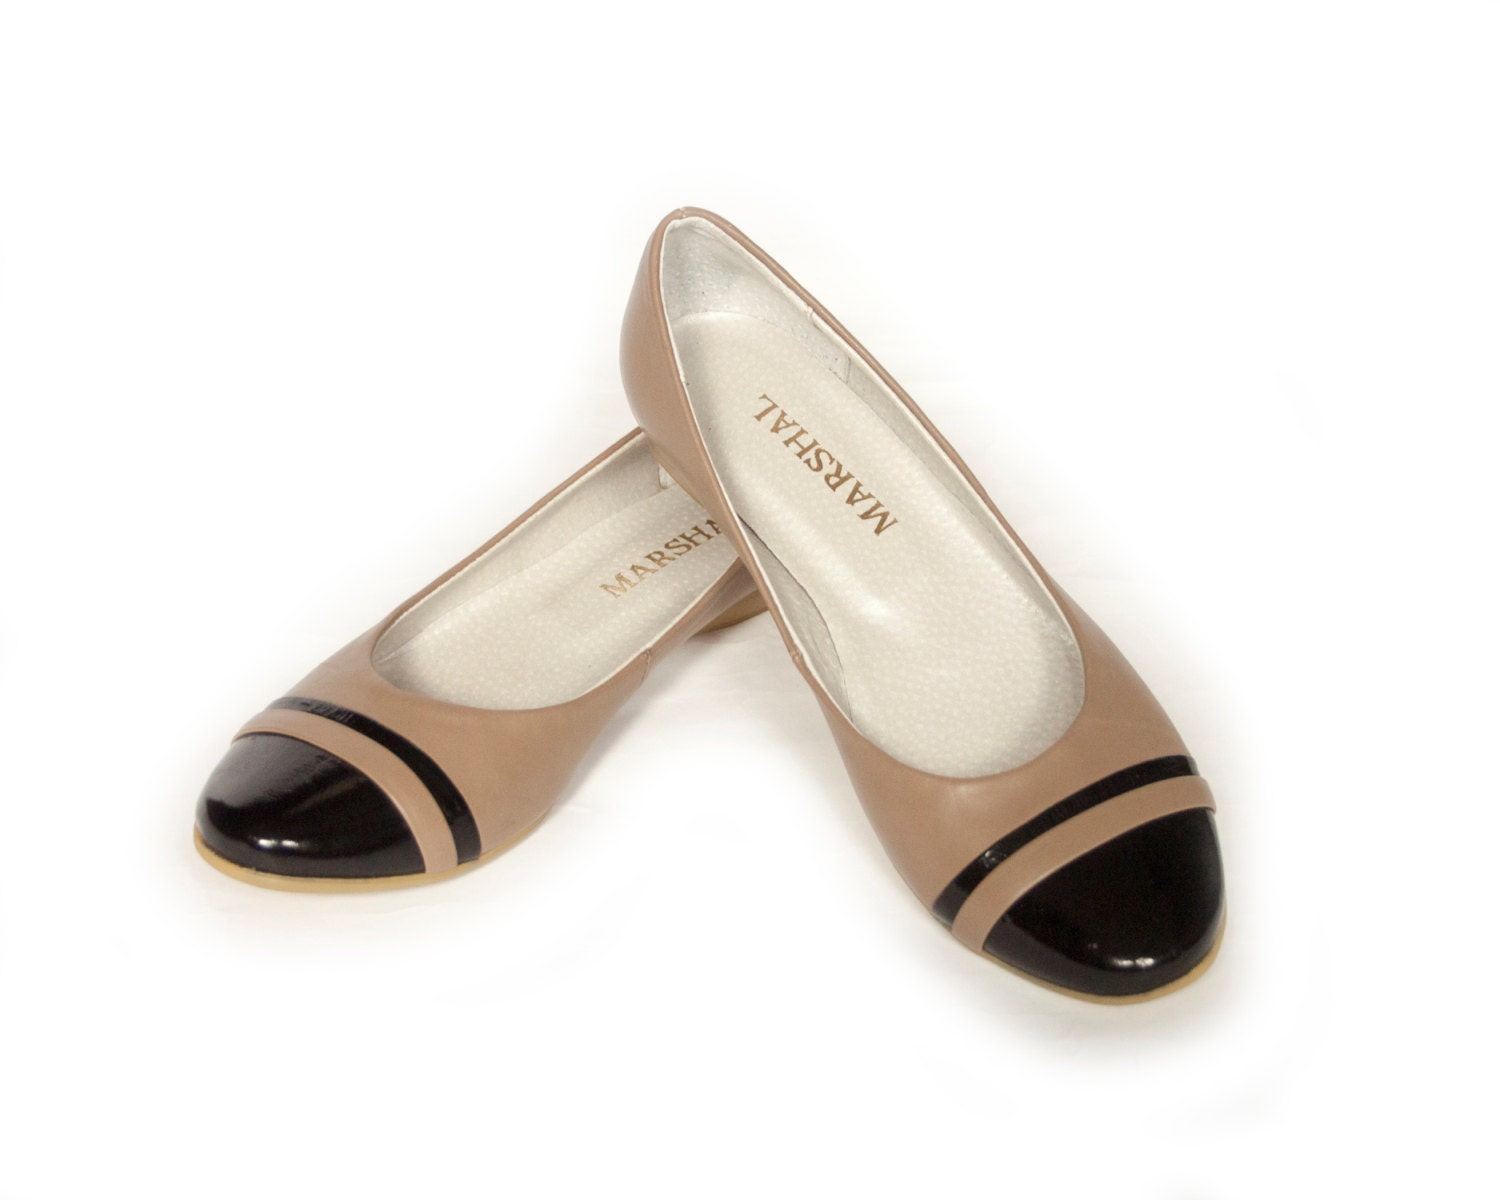 Find beige ballerina flats at ShopStyle. Shop the latest collection of beige ballerina flats from the most popular stores - all in one place.